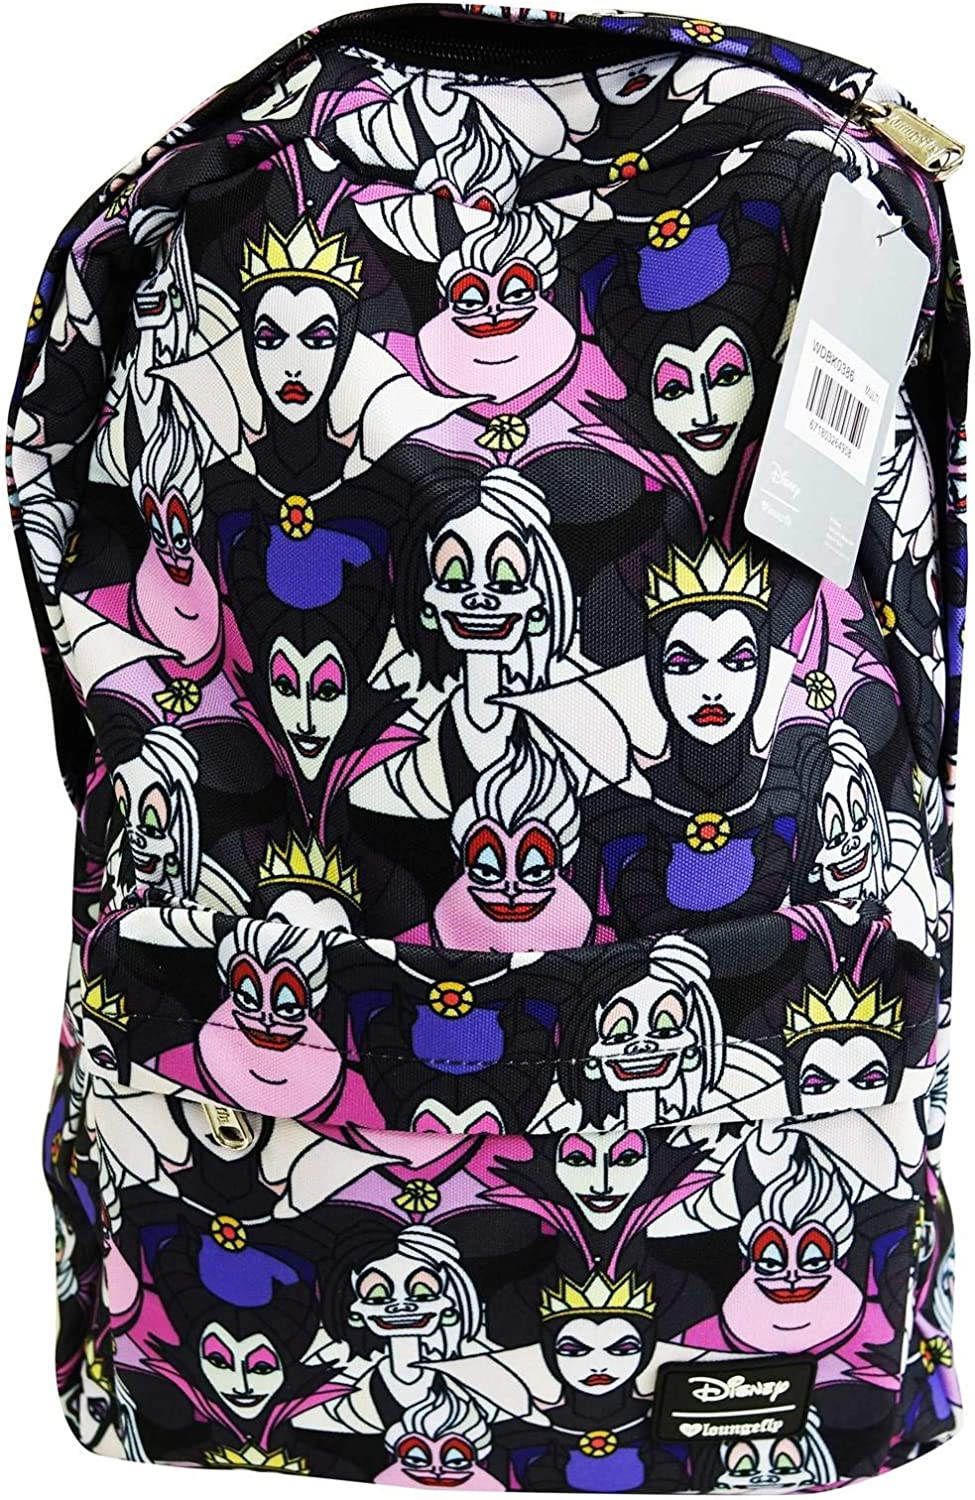 Loungefly Disney Villains All Over Print Backpack Standard